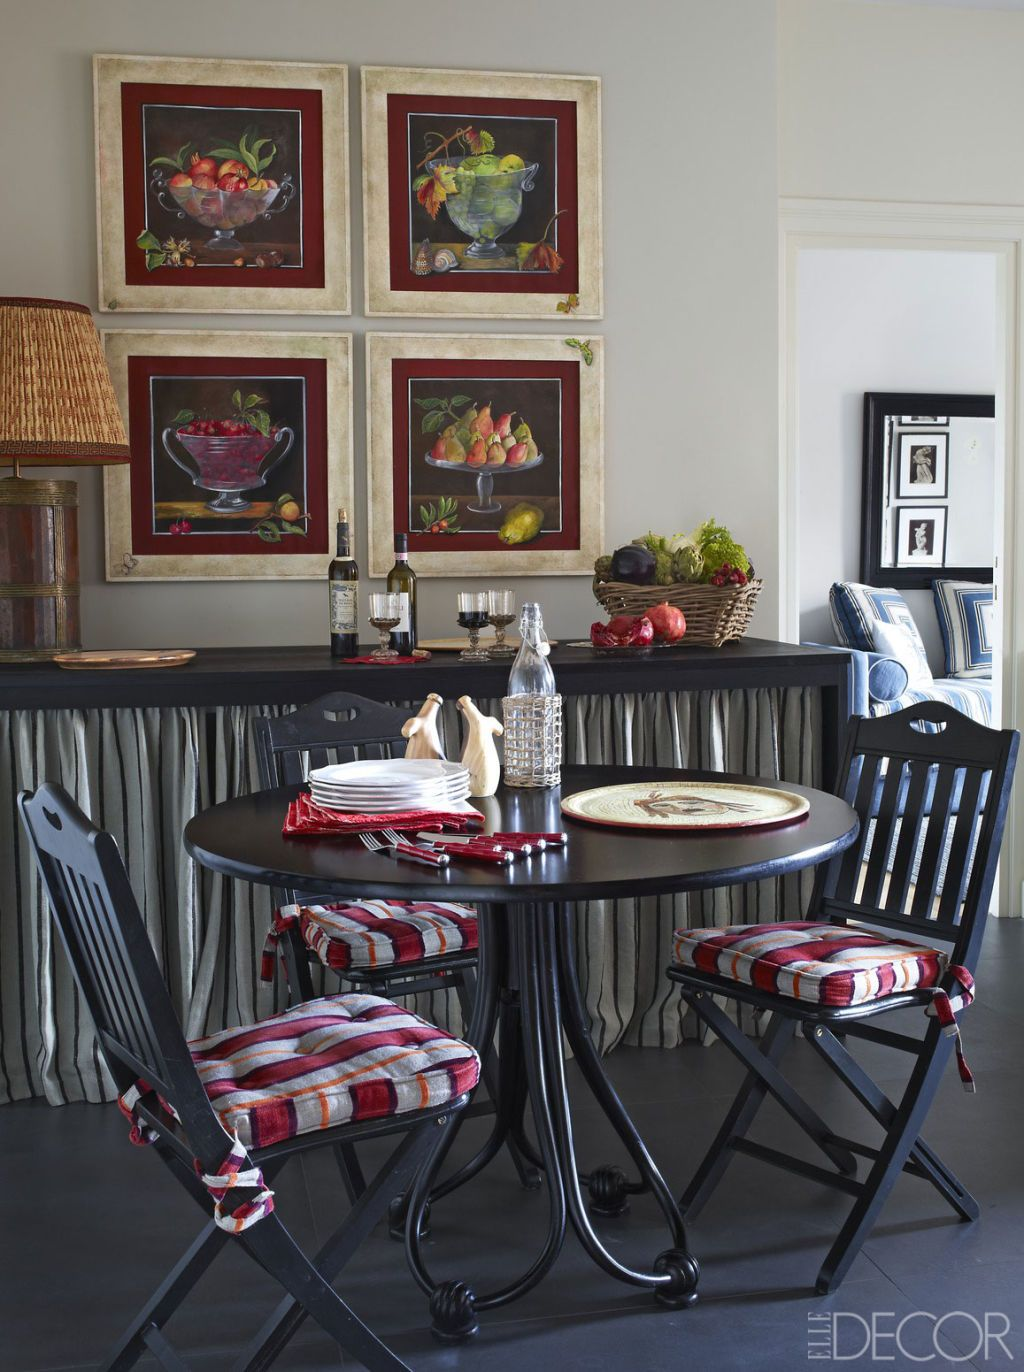 HOUSE TOUR: Inside A Richly-Hued, Yet Refined Italian Home